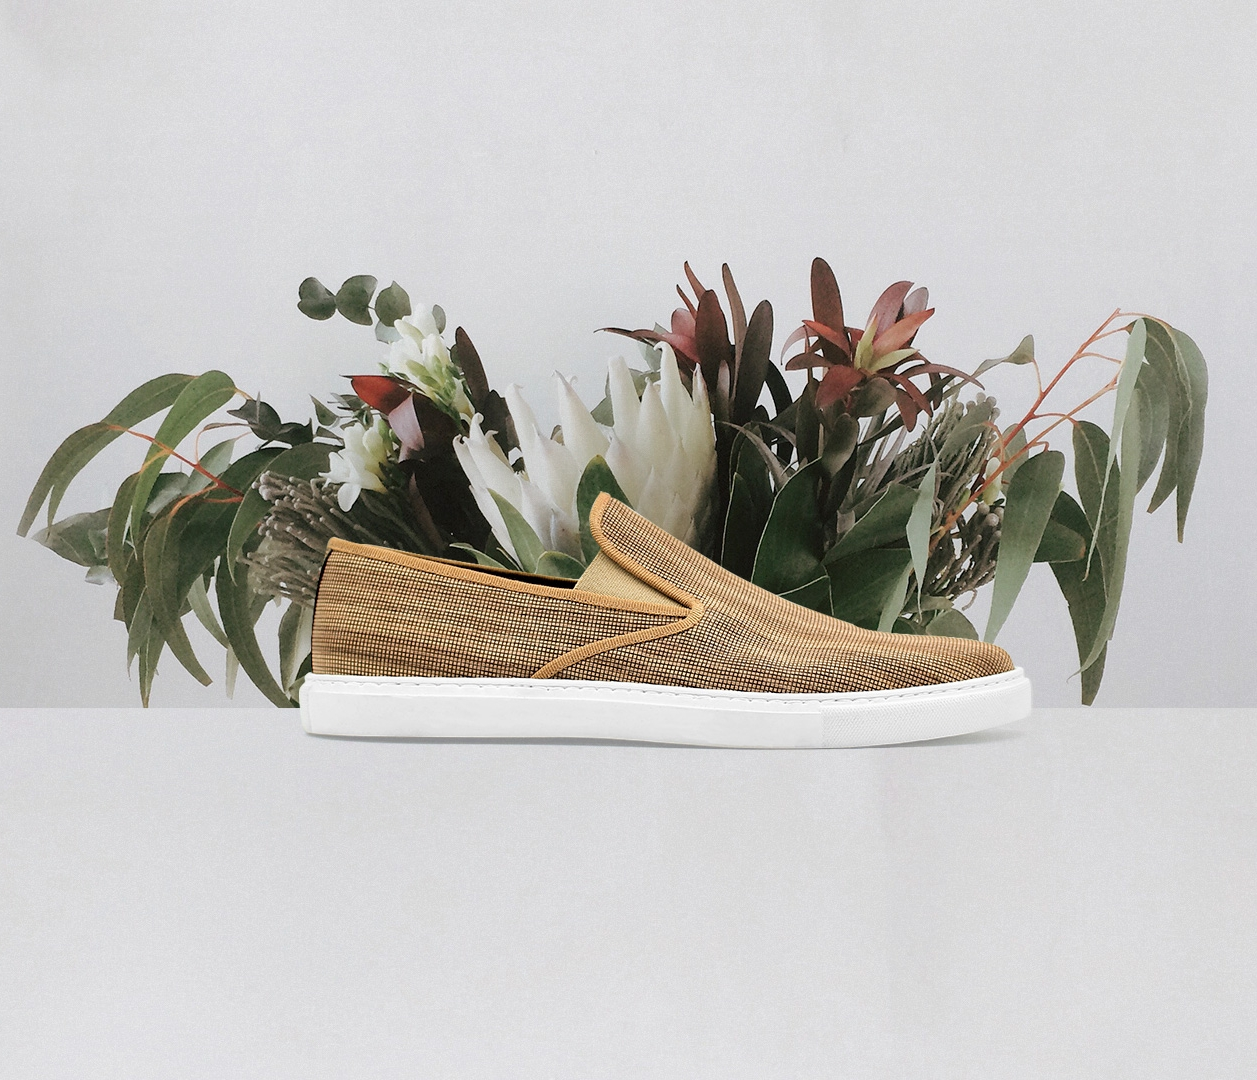 WOOWE BRAND   Vegan shoes made in Italy from sustainably-harvested wood.